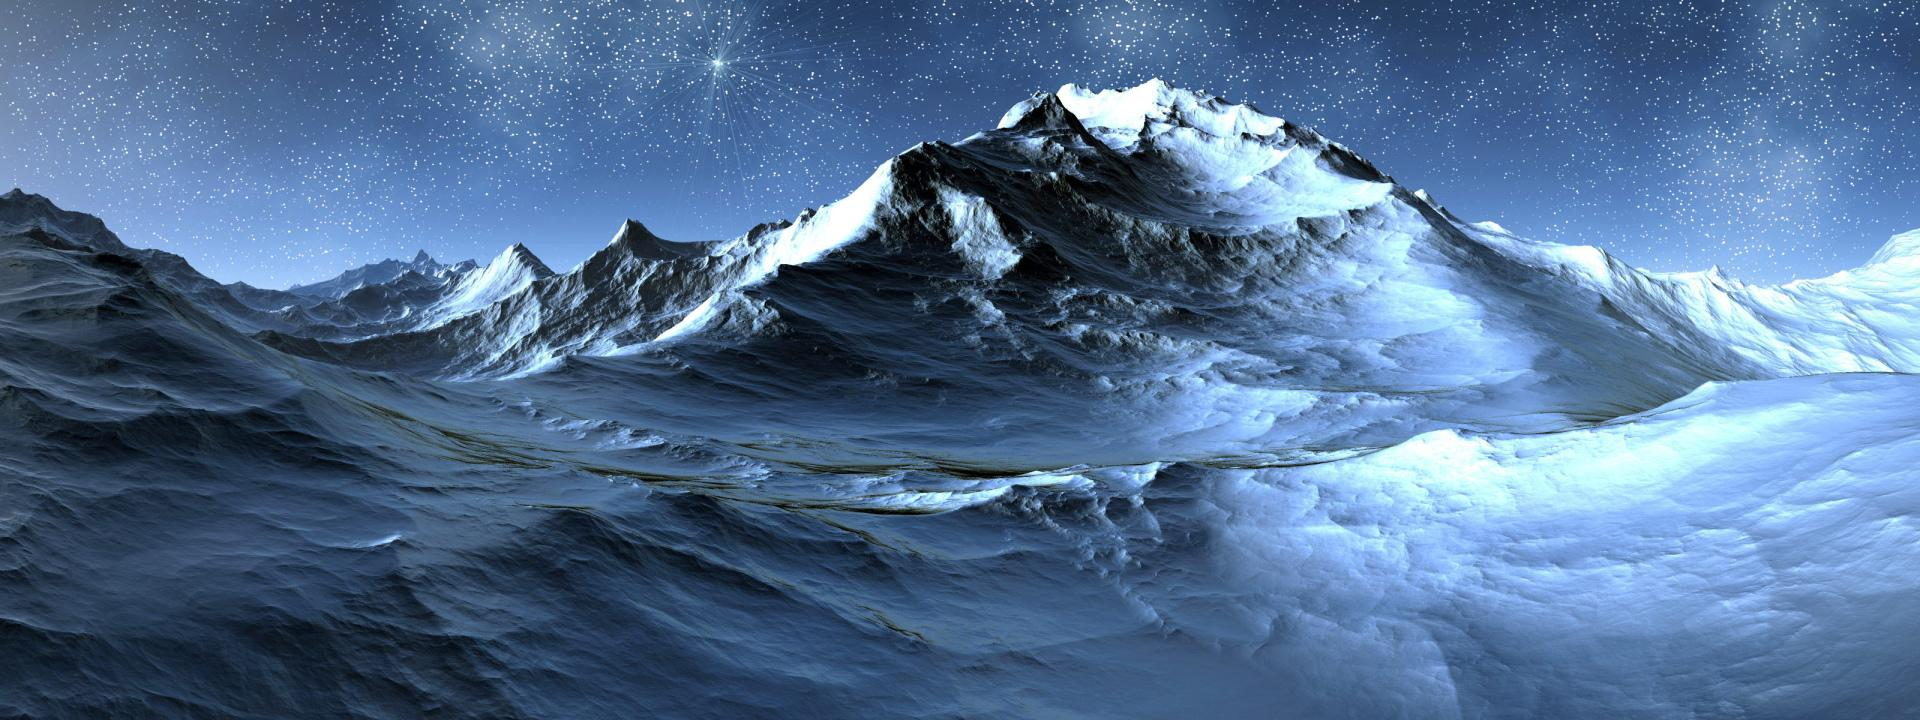 Mountain Artistic wallpapers HD quality